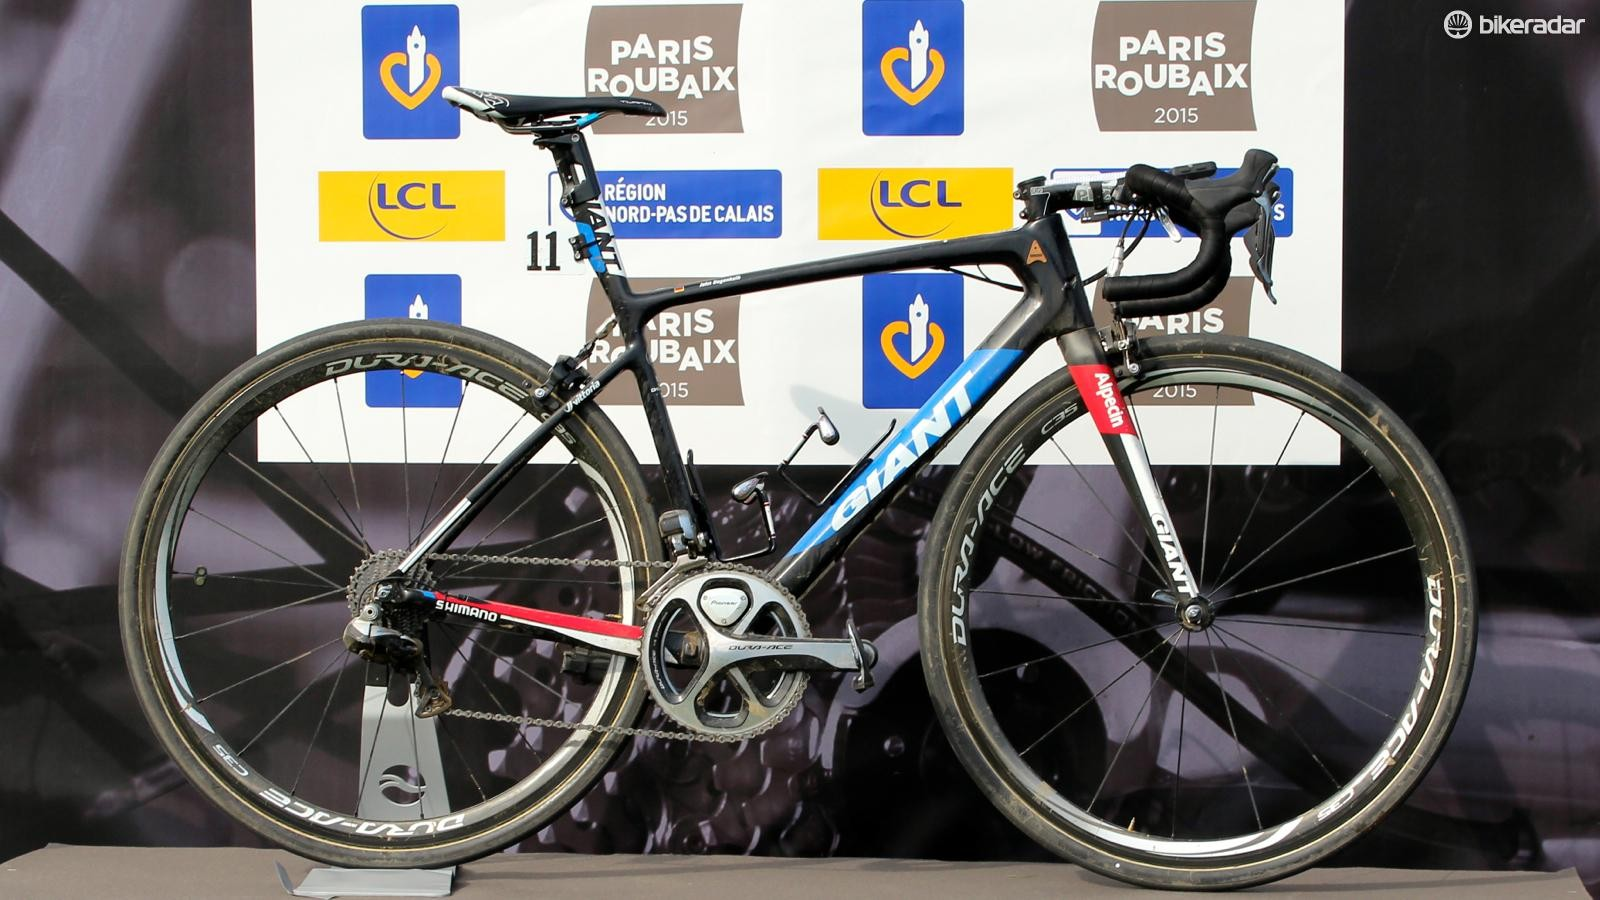 The winning bike of the 2015 Paris-Roubaix, the 2014 Giant Defy Advanced SL